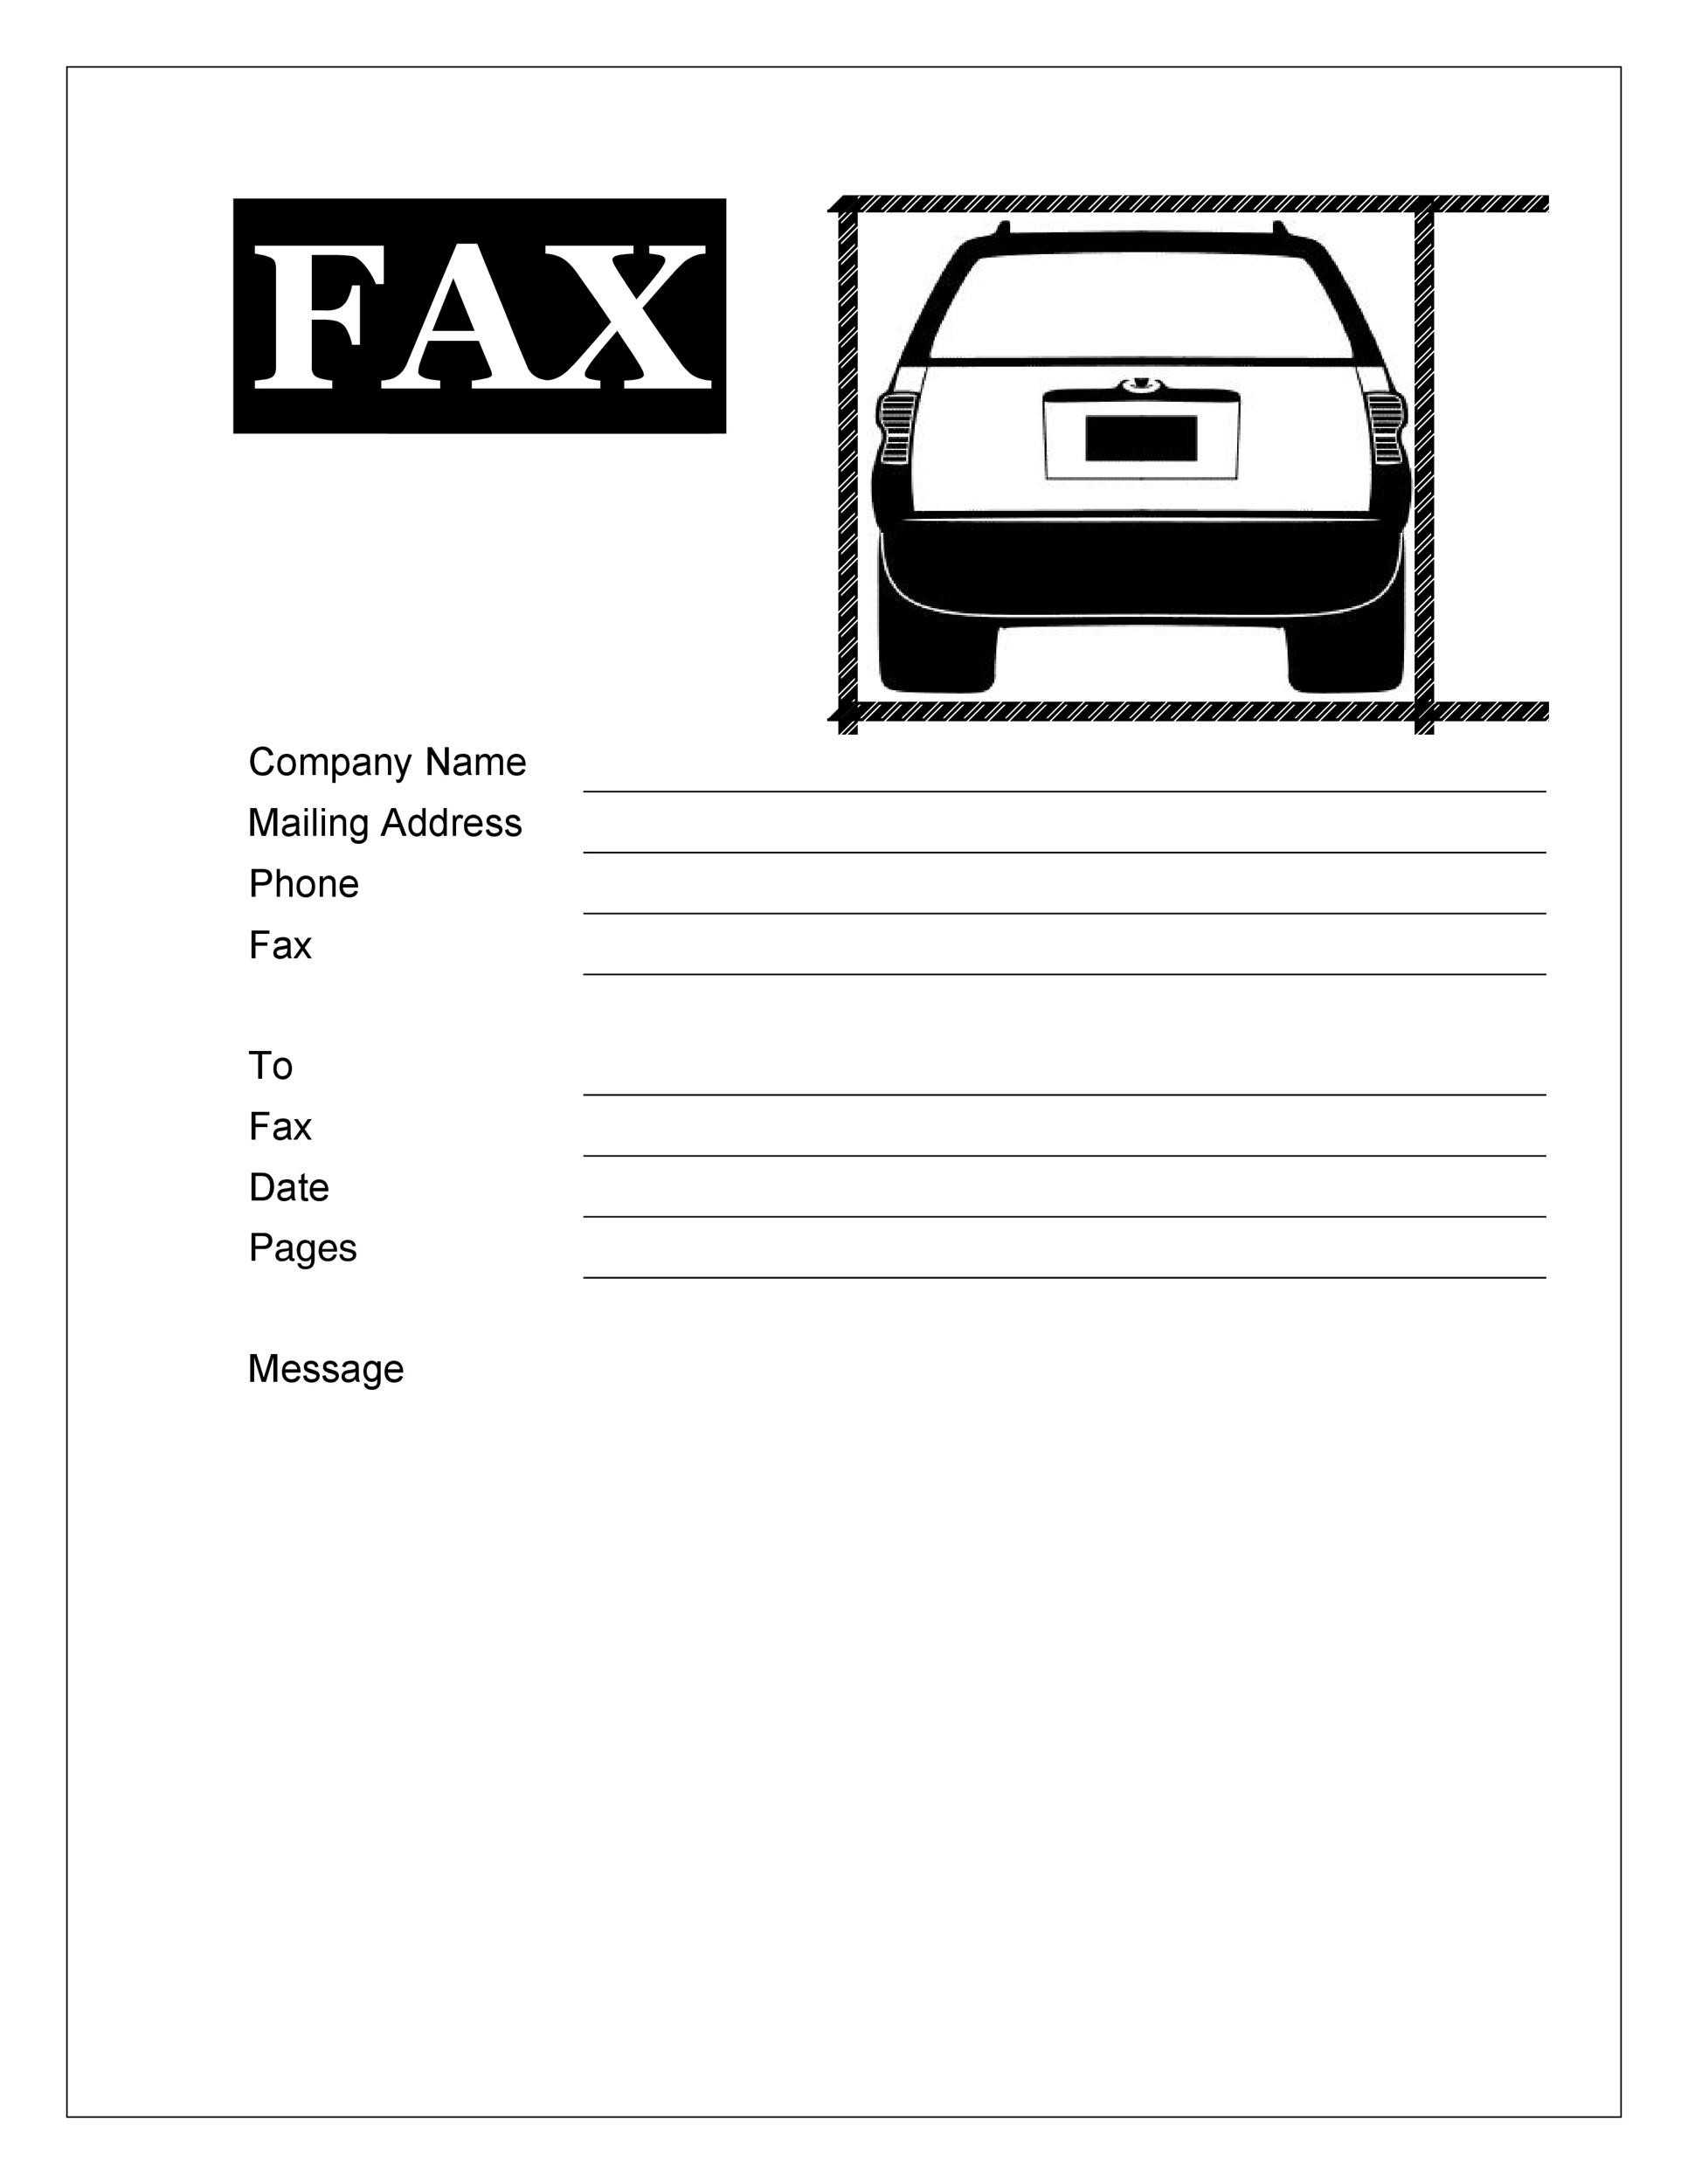 Fax Template For Word from templatelab.com